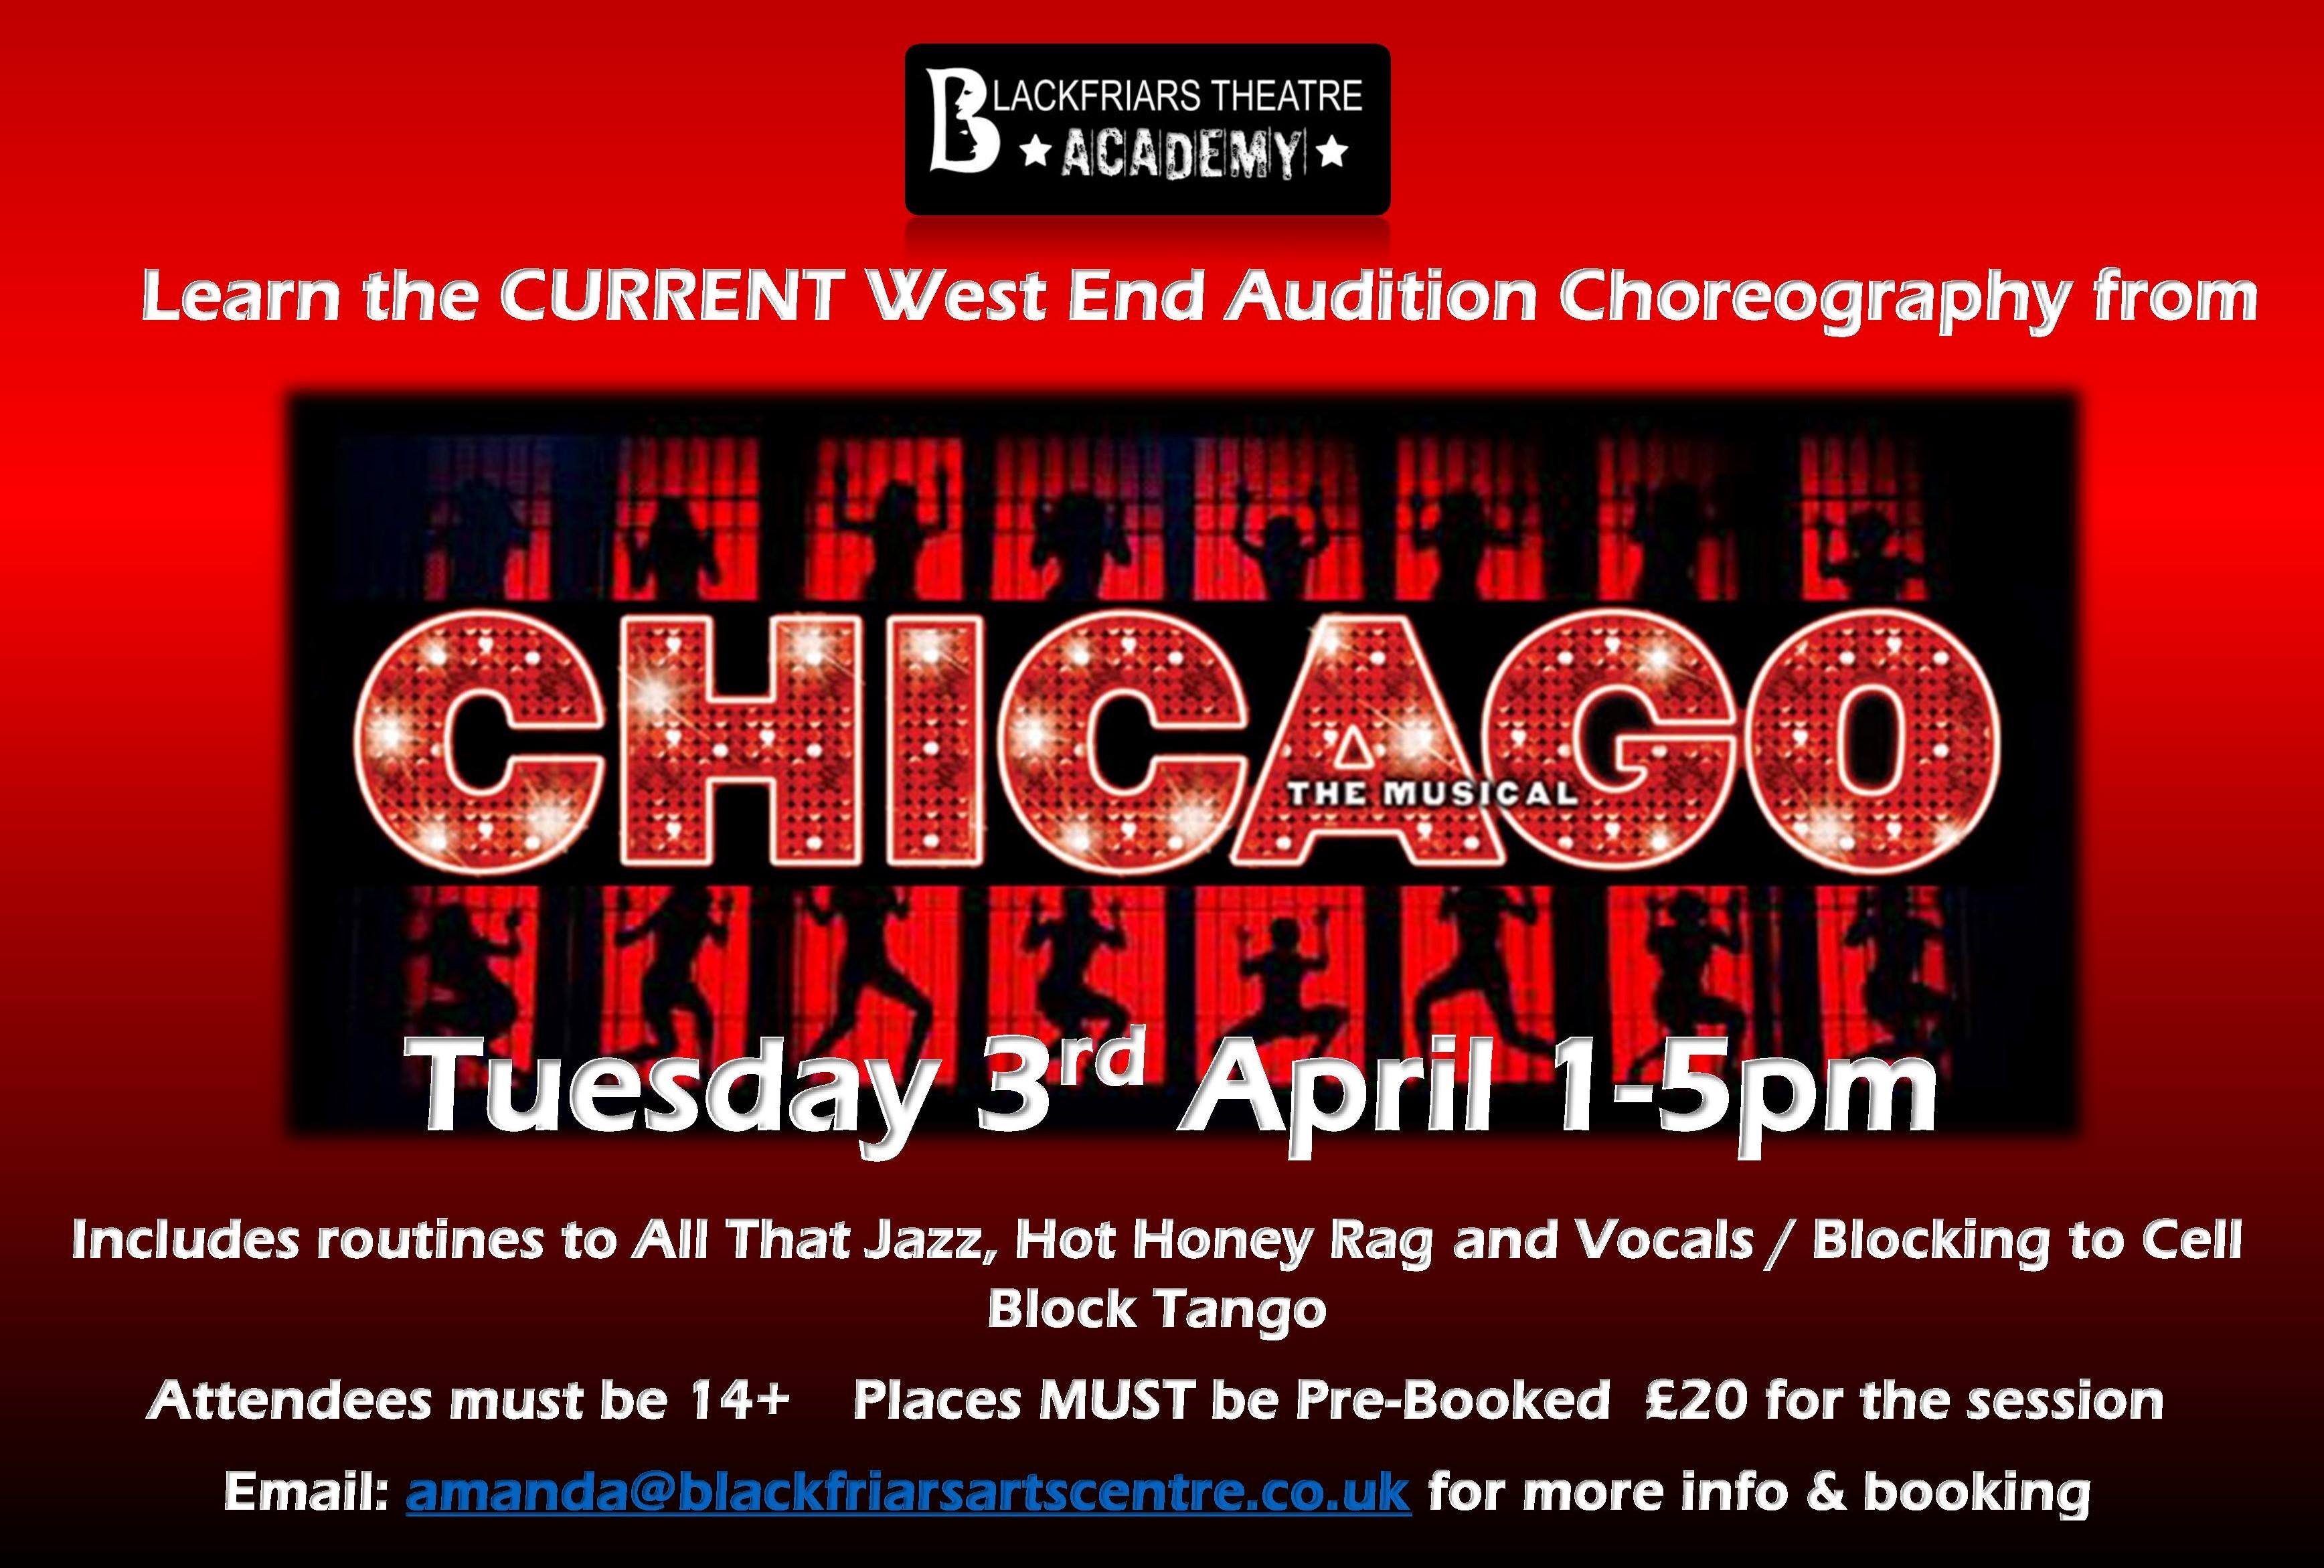 Blackfriars Theatre Academy - Easter Chicago Workshop